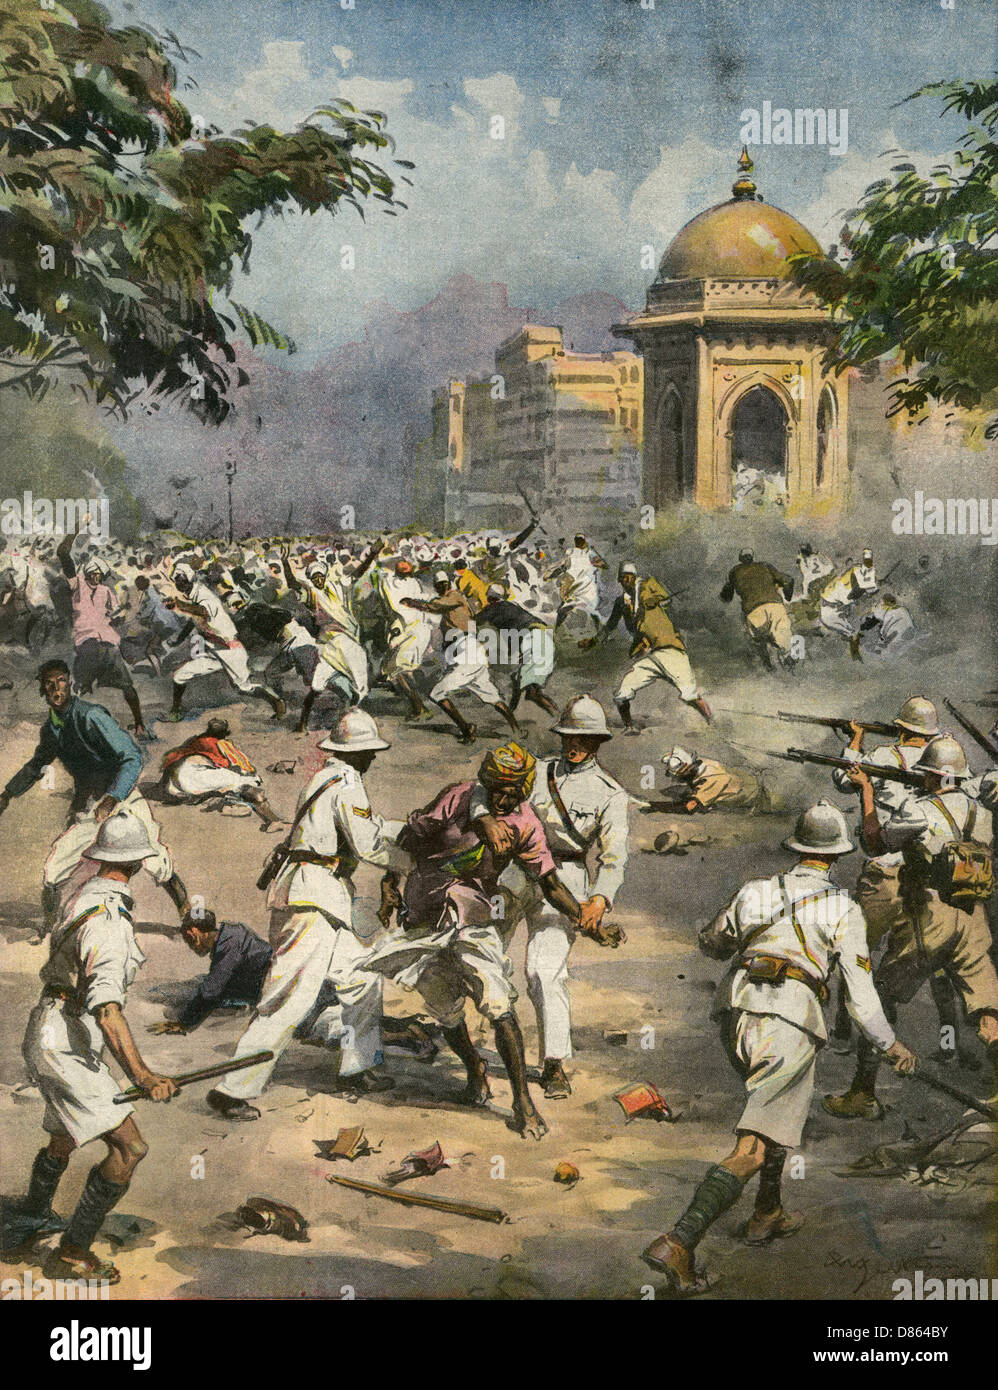 Nationalists In India During Second World War - Stock Image